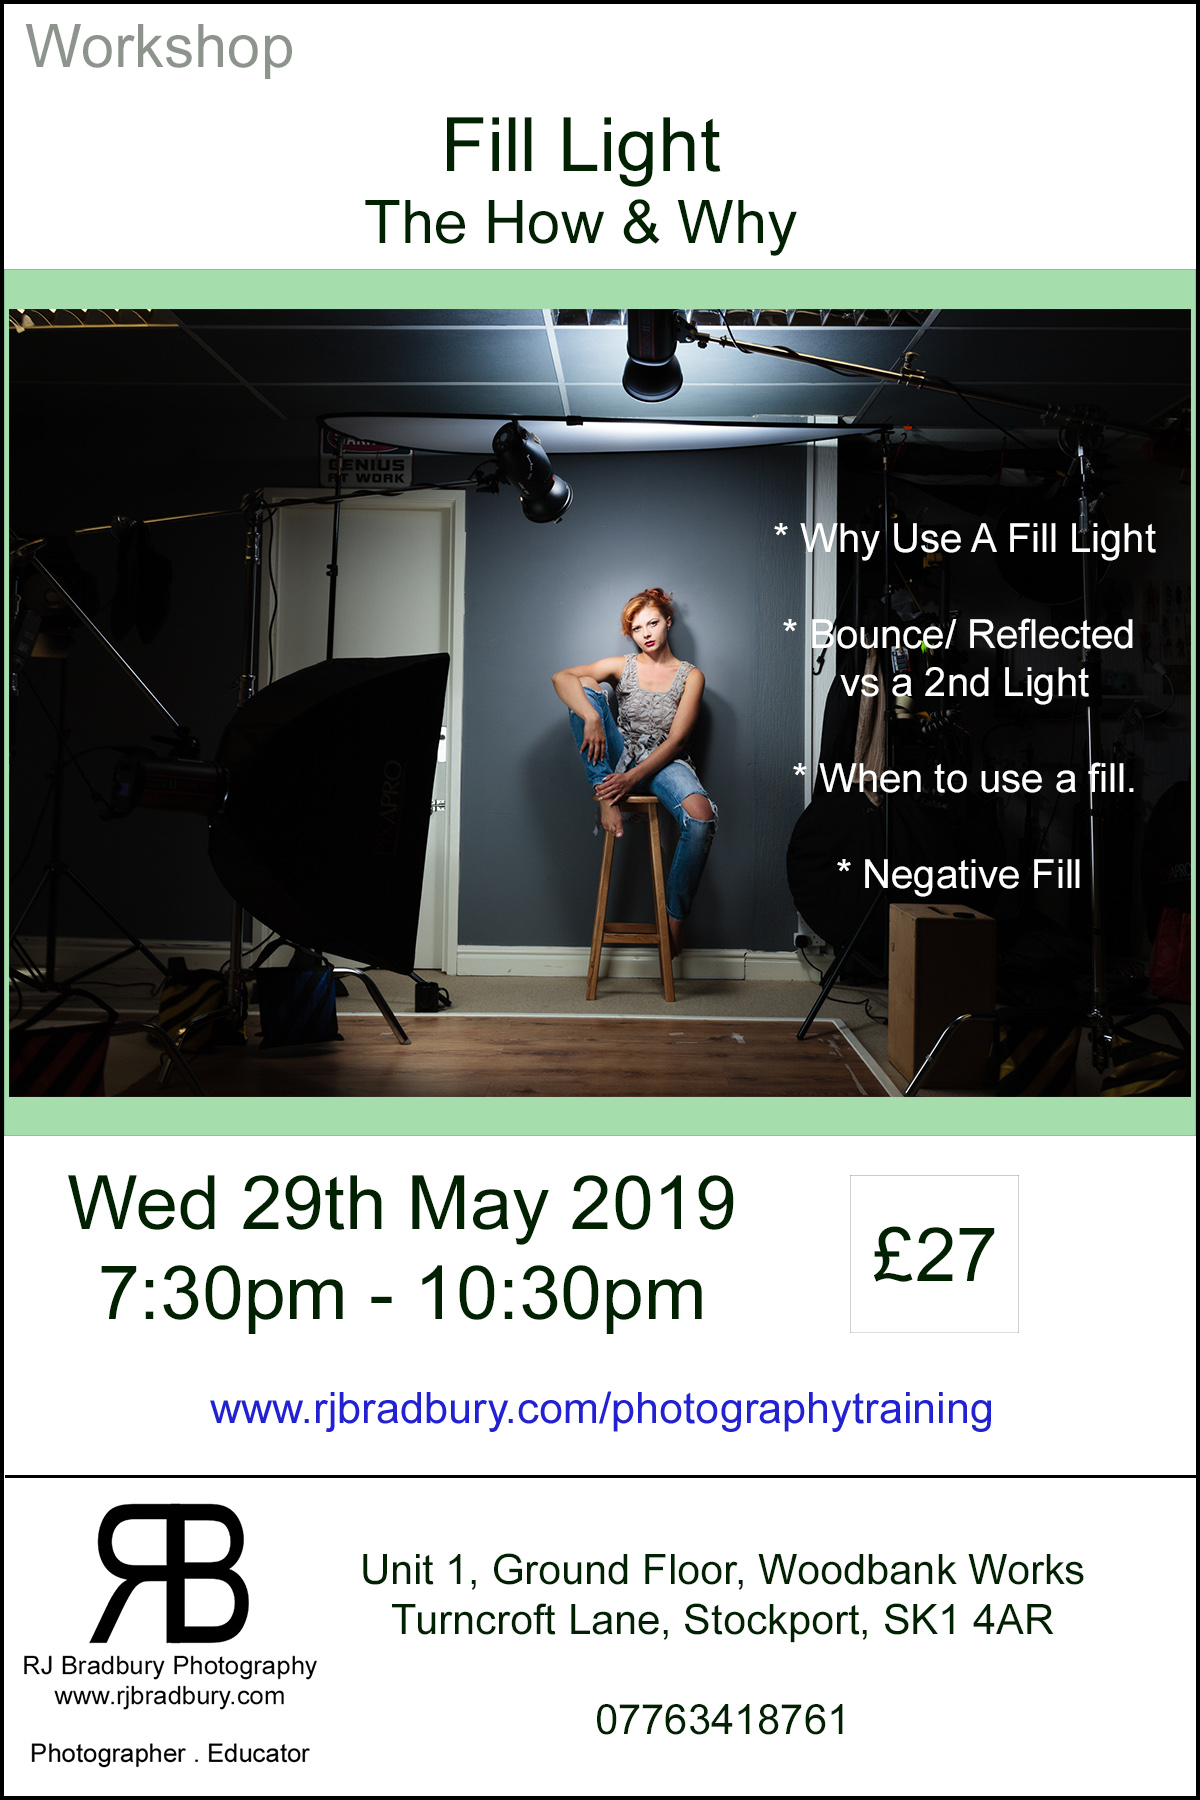 Workshop - Fill Light - The How & Why